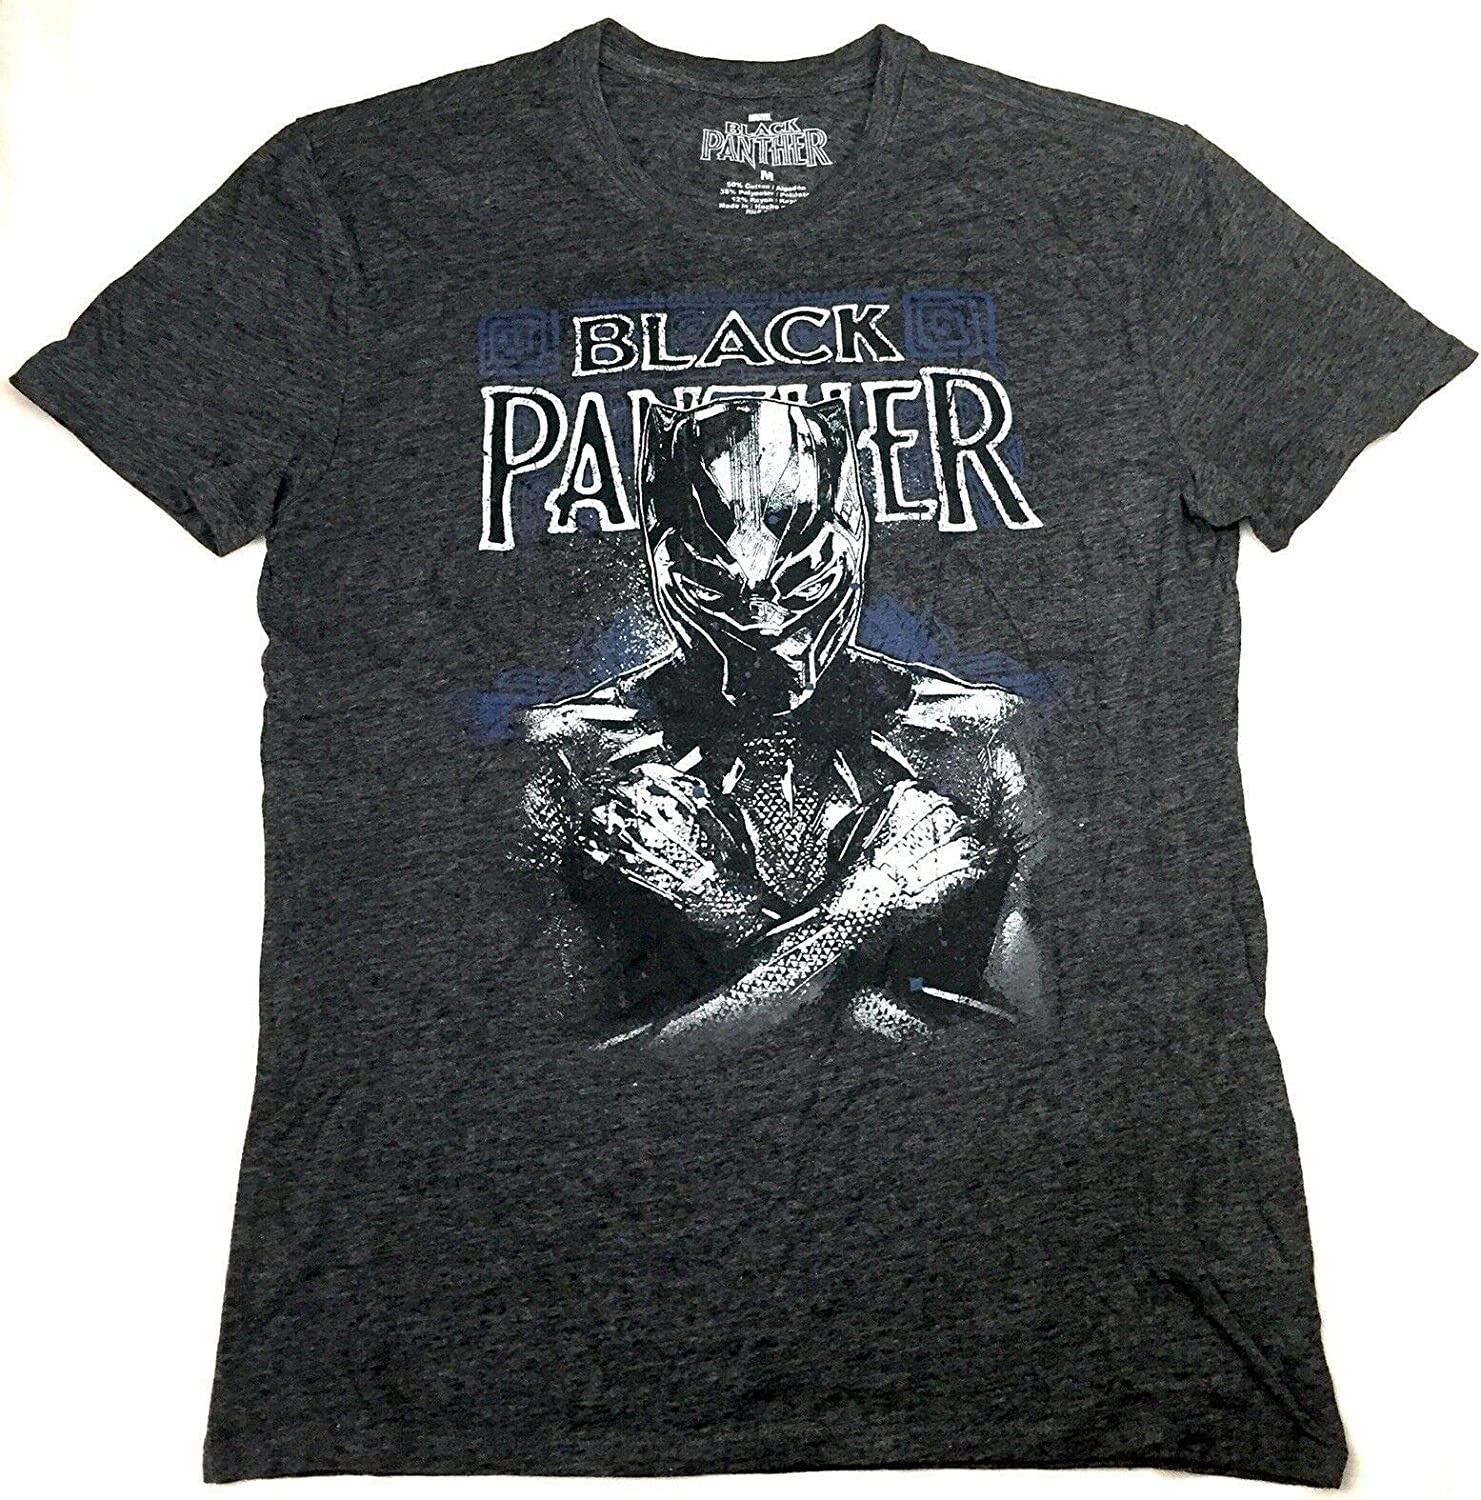 BLACK PANTHER Charcoal Heather Mens Licensed T-Shirt